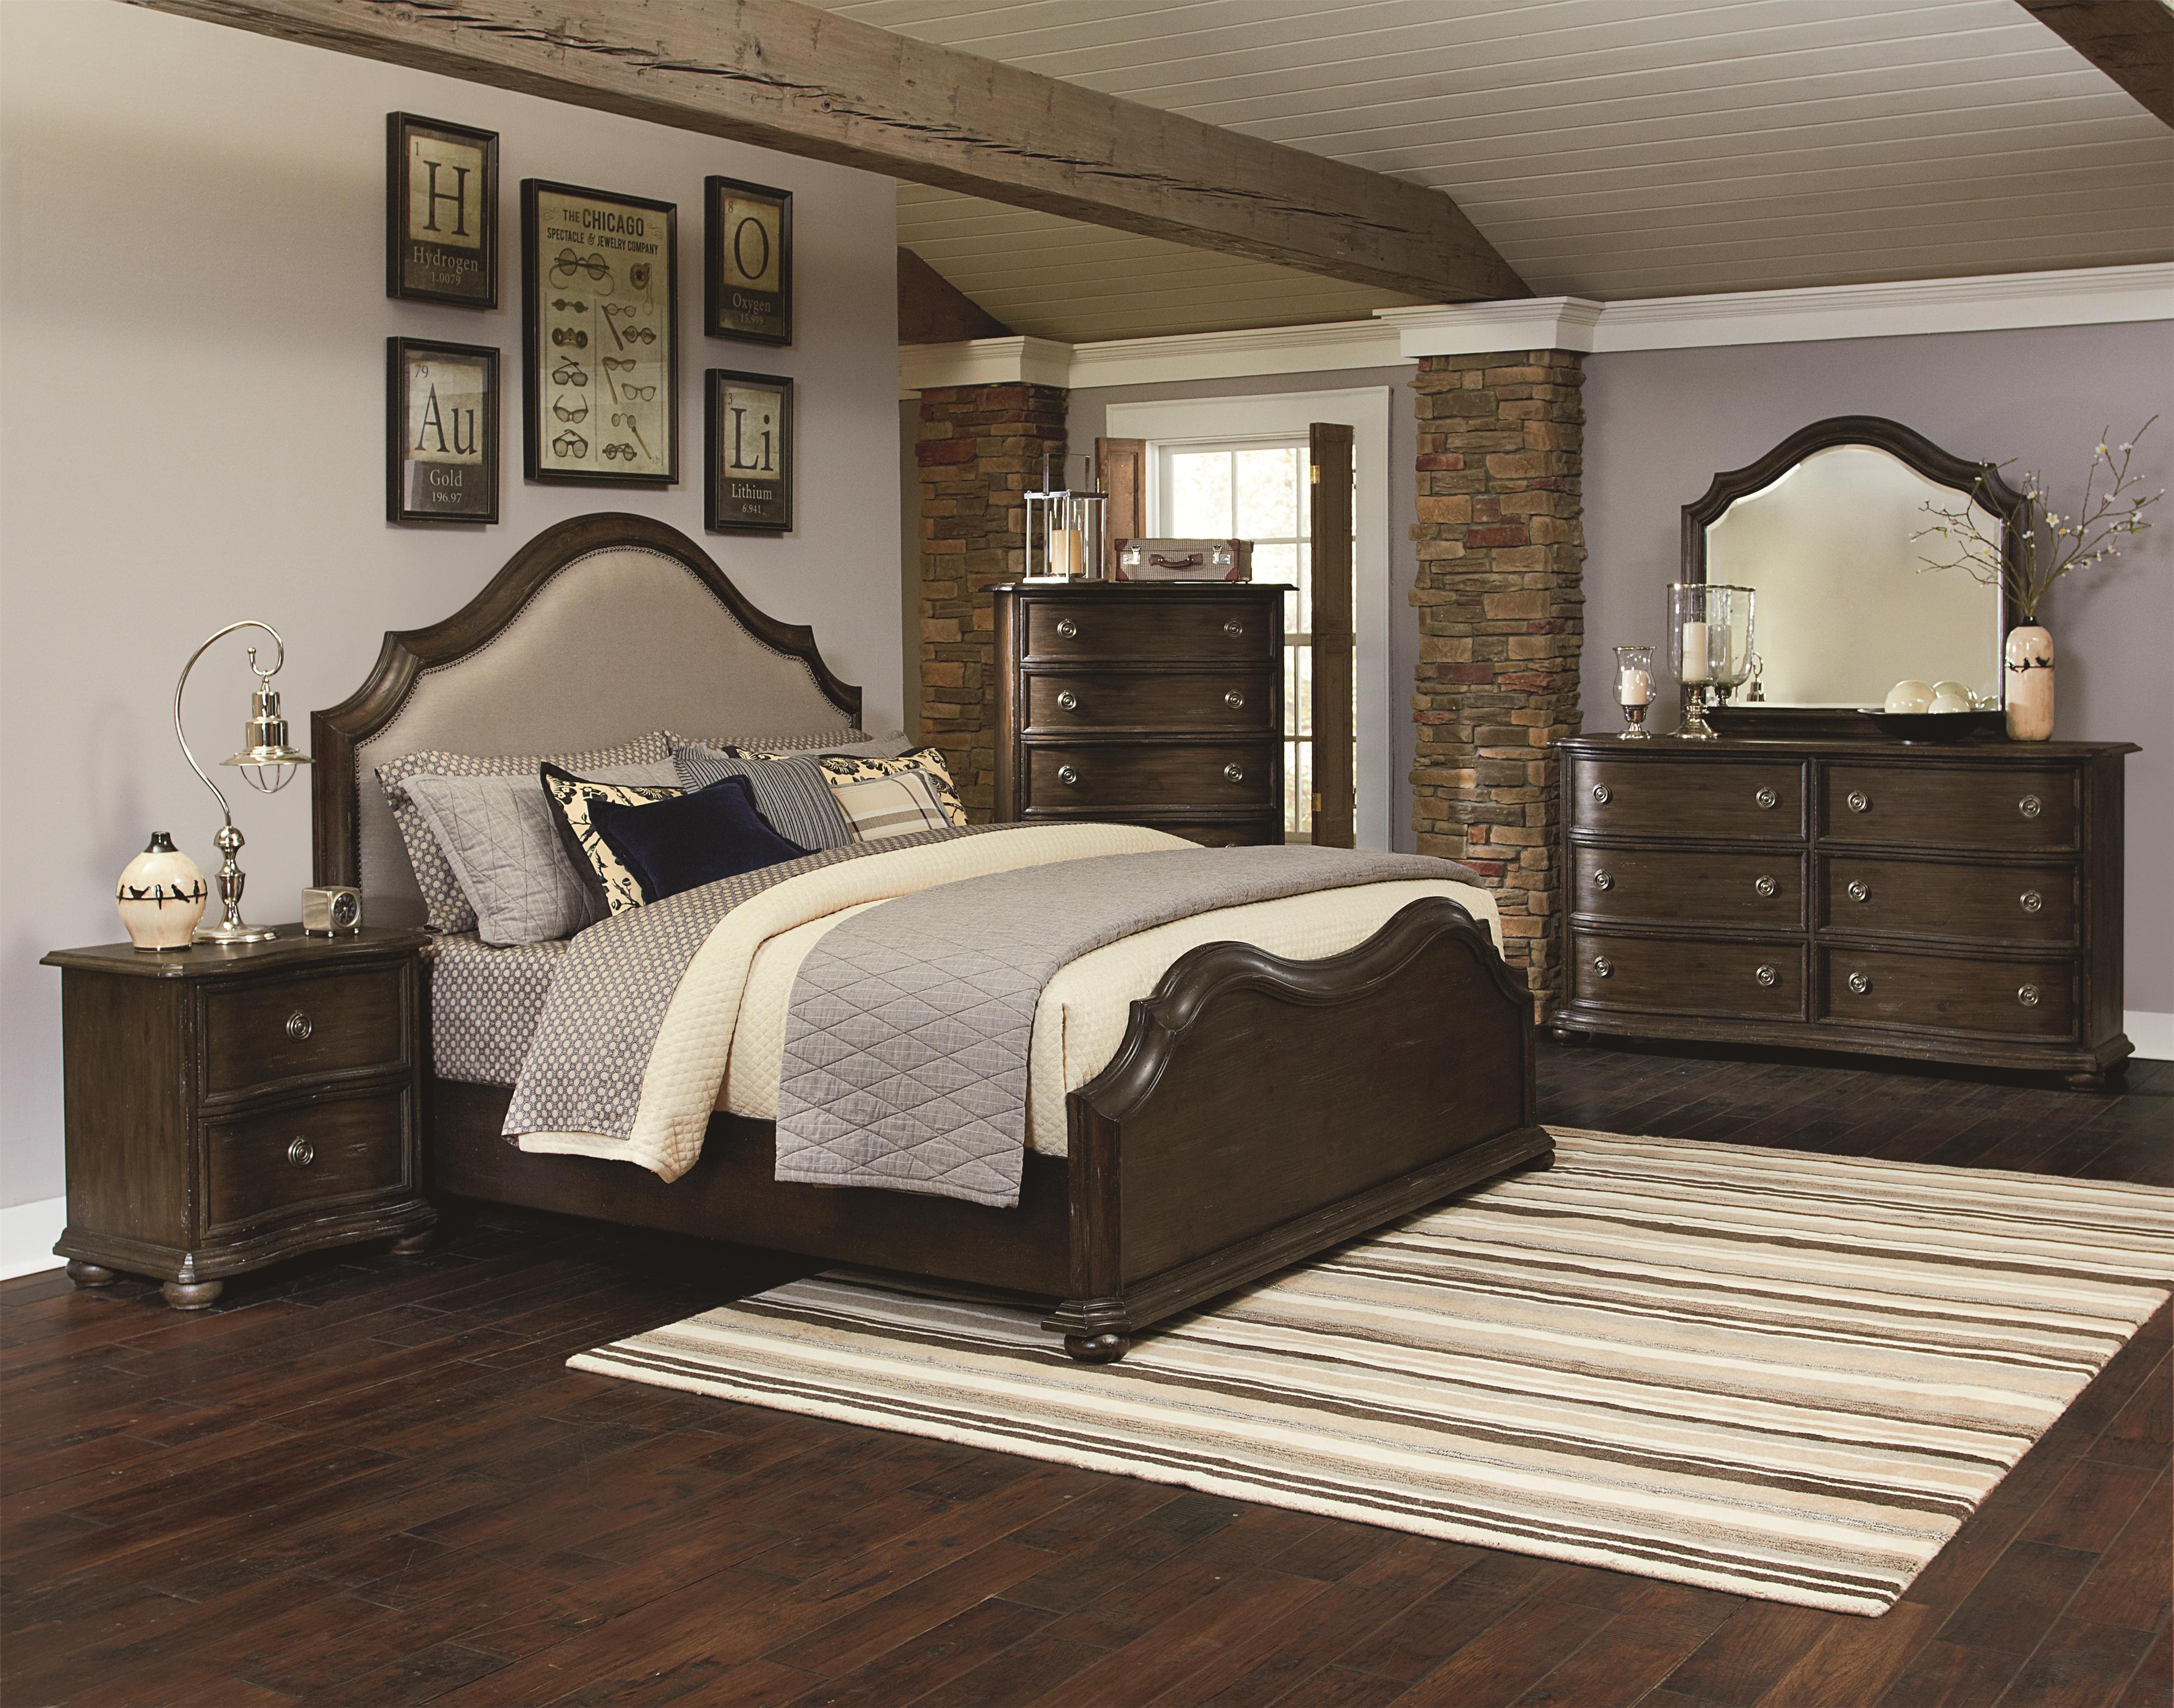 King Size Upholstered Bed with Serpentine Curves and Nailhead ...